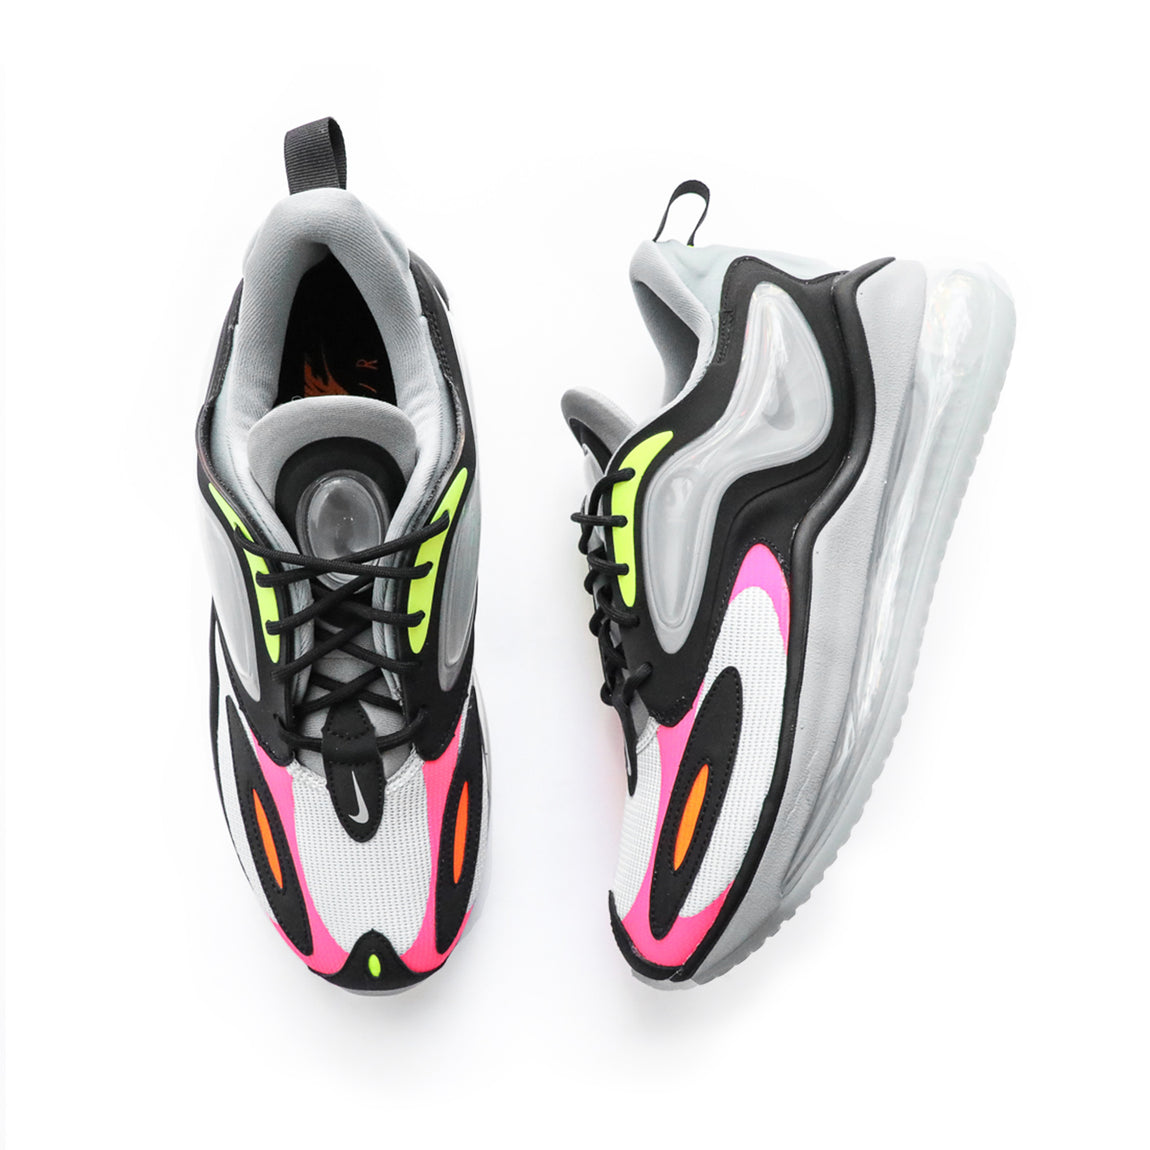 Nike Air Max Zephyr (Photon Dust/Black/Volt/Hyper Pink) 1/9 - Nike Air Max Zephyr (Photon Dust/Black/Volt/Hyper Pink) 1/9 -